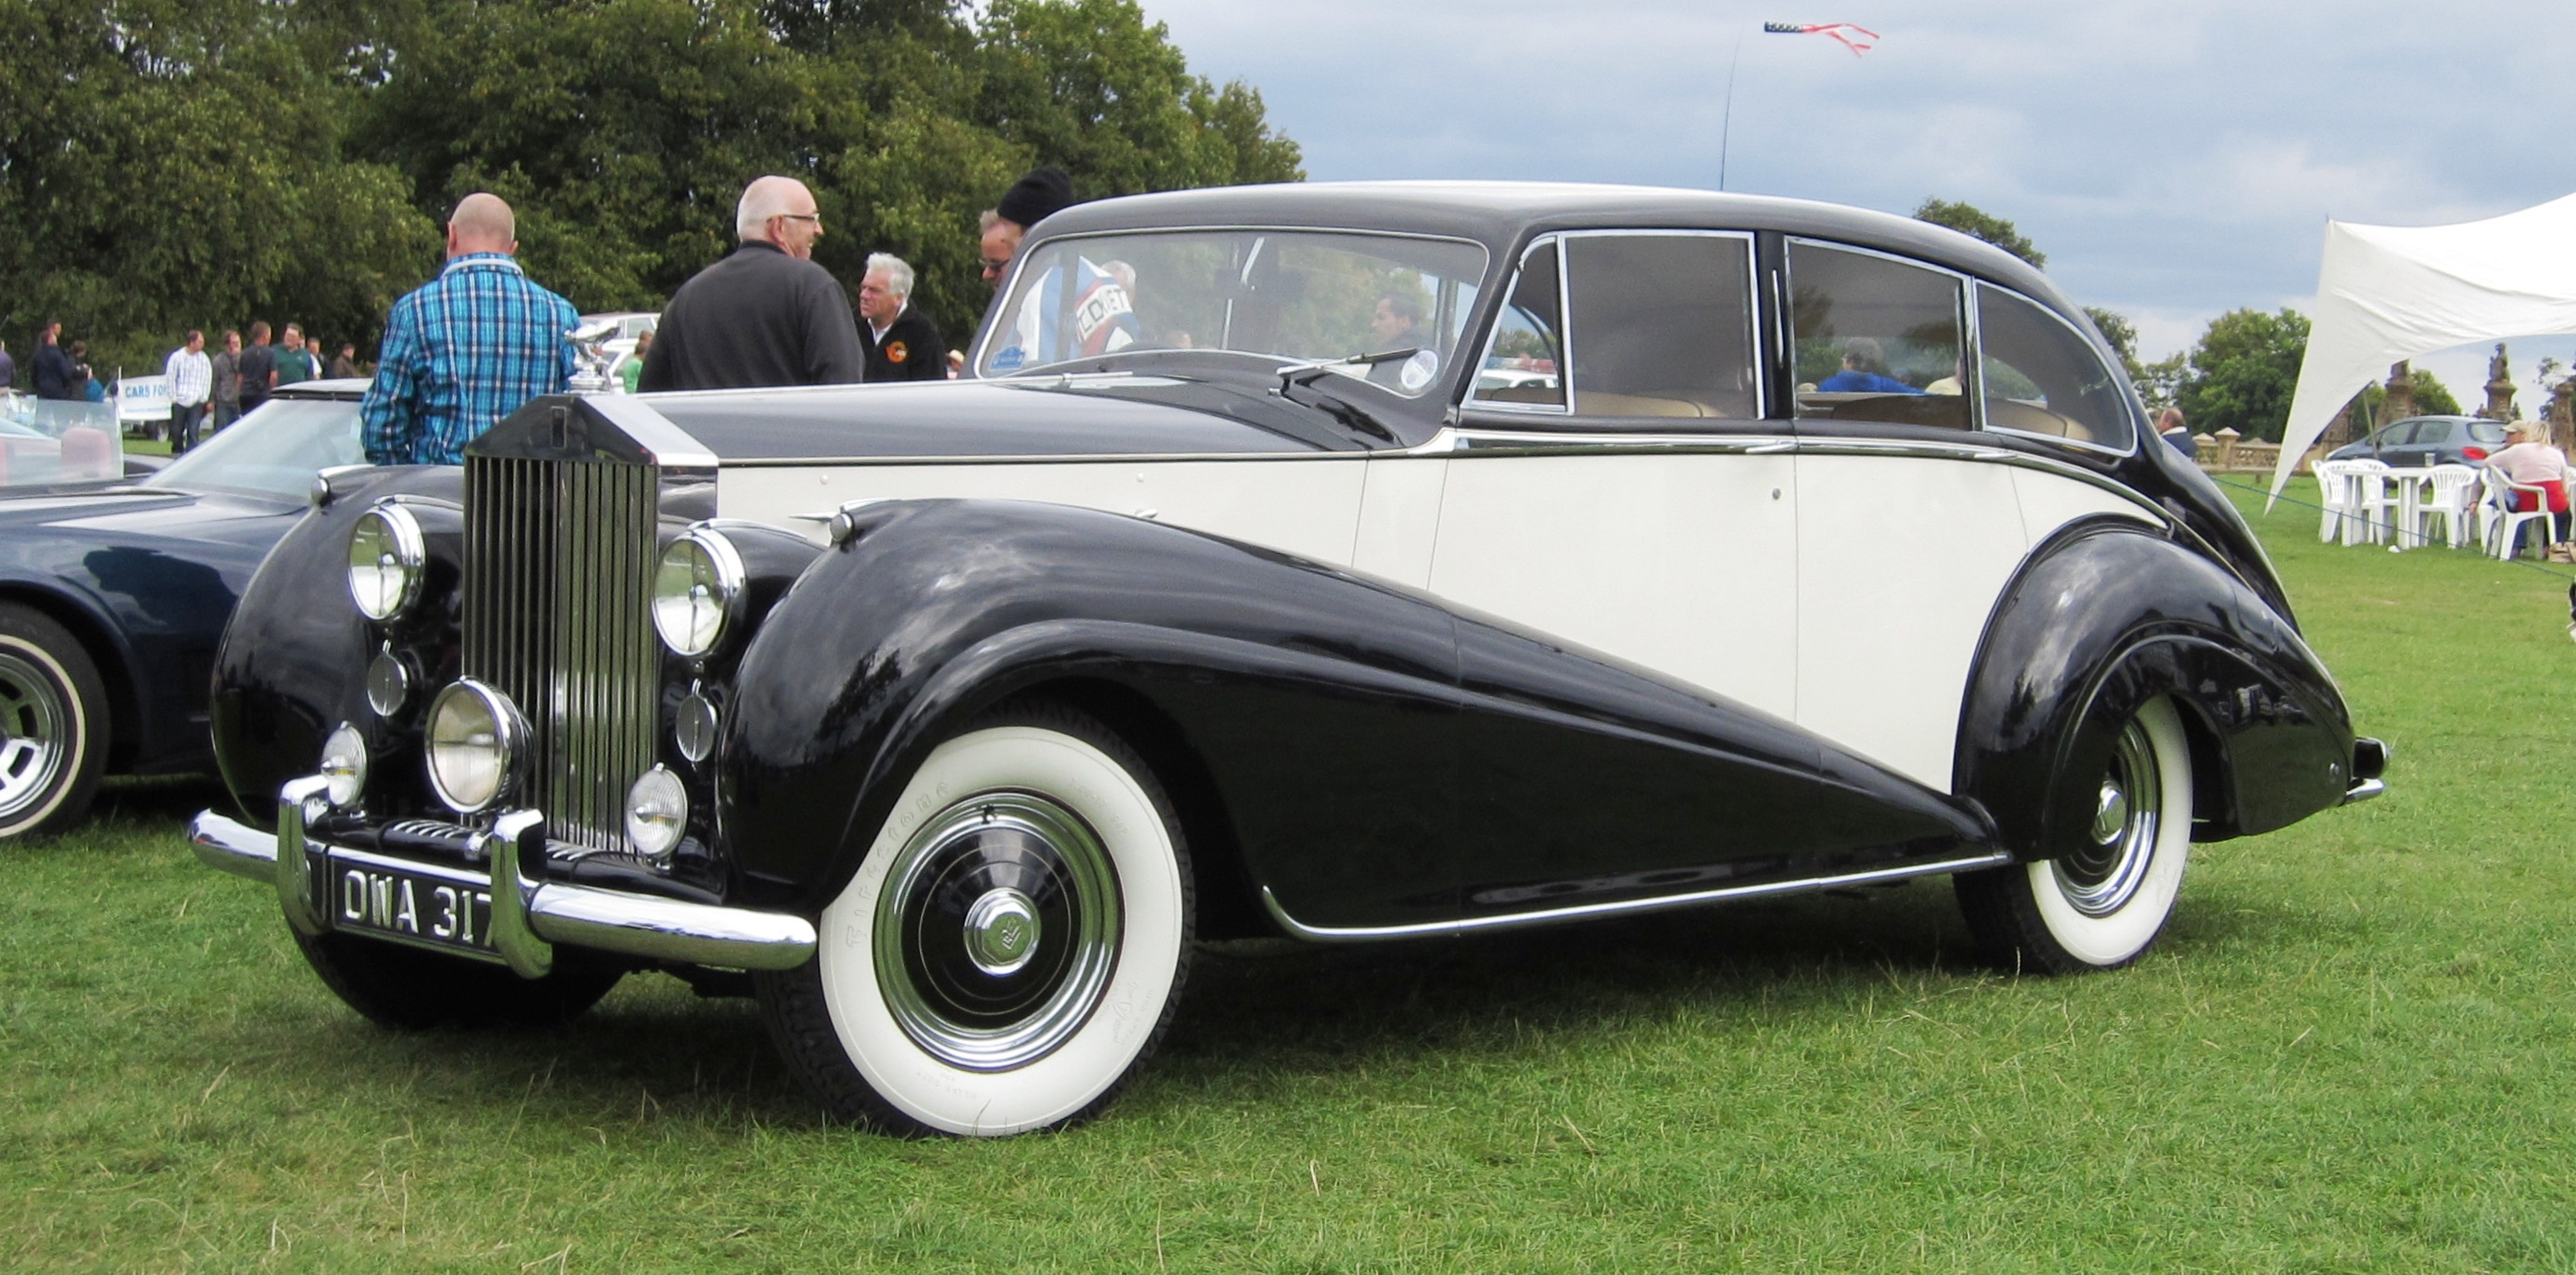 file:rolls royce silver wraith dec 1951 4566cc - wikimedia commons